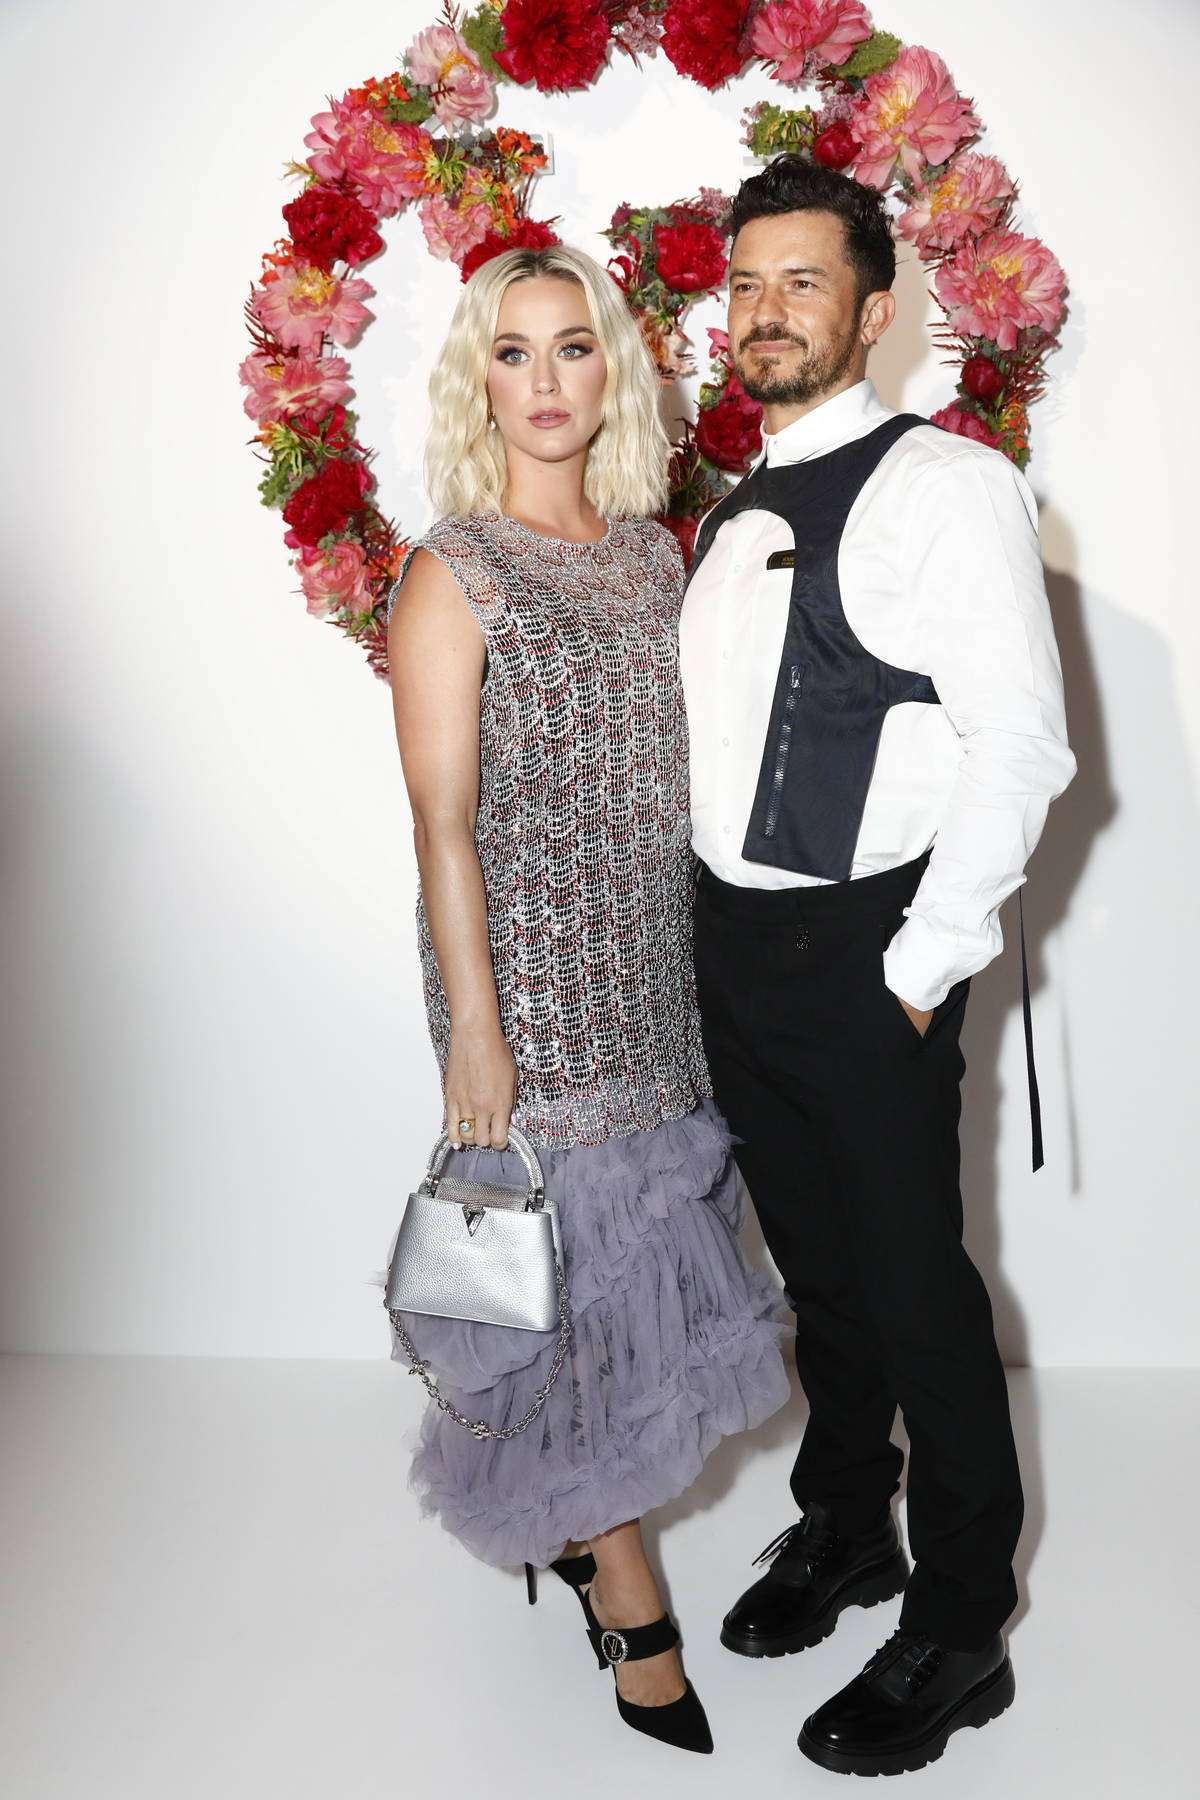 Katy Perry and Orlando Bloom attend the Louis Vuitton Fragrance Dinner at the Louis Vuitton Foundation in Paris, France